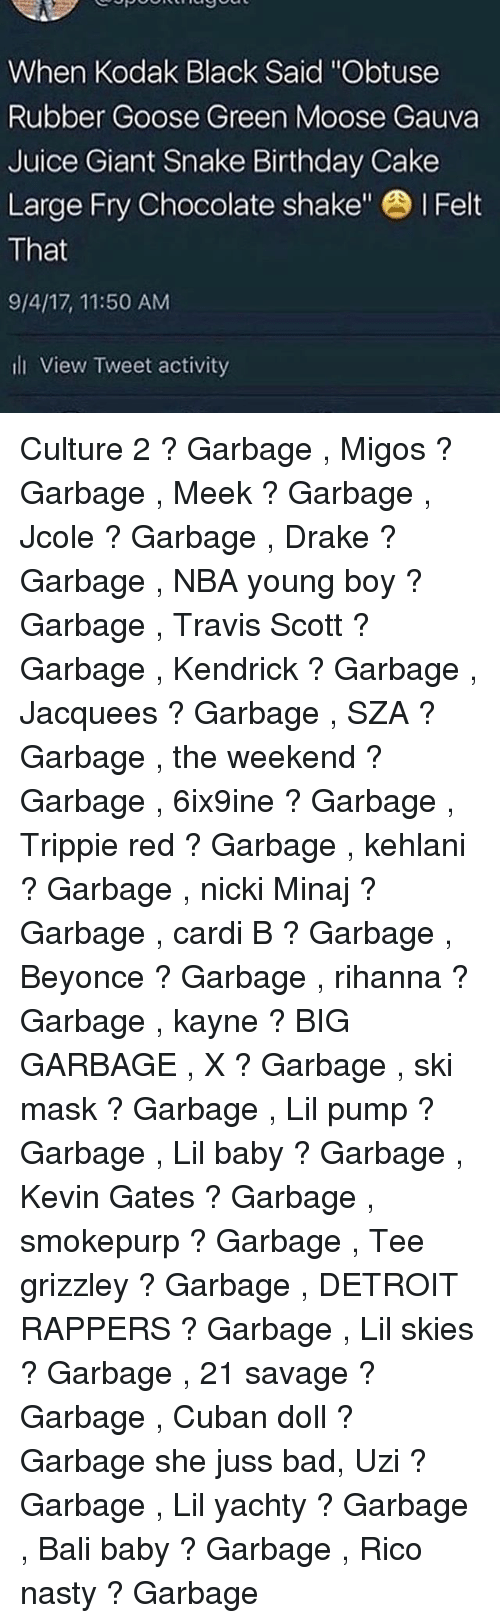 "Bad, Beyonce, and Birthday: When Kodak Black Said ""Obtuse  Rubber Goose Green Moose Gauva  Juice Giant Snake Birthday Cake  Large Fry Chocolate shake"" I Felt  That  9/4/17, 11:50 AM  li View Tweet activity Culture 2 ? Garbage , Migos ? Garbage , Meek ? Garbage , Jcole ? Garbage , Drake ? Garbage , NBA young boy ? Garbage , Travis Scott ? Garbage , Kendrick ? Garbage , Jacquees ? Garbage , SZA ? Garbage , the weekend ? Garbage , 6ix9ine ? Garbage , Trippie red ? Garbage , kehlani ? Garbage , nicki Minaj ? Garbage , cardi B ? Garbage , Beyonce ? Garbage , rihanna ? Garbage , kayne ? BIG GARBAGE , X ? Garbage , ski mask ? Garbage , Lil pump ? Garbage , Lil baby ? Garbage , Kevin Gates ? Garbage , smokepurp ? Garbage , Tee grizzley ? Garbage , DETROIT RAPPERS ? Garbage , Lil skies ? Garbage , 21 savage ? Garbage , Cuban doll ? Garbage she juss bad, Uzi ? Garbage , Lil yachty ? Garbage , Bali baby ? Garbage , Rico nasty ? Garbage"